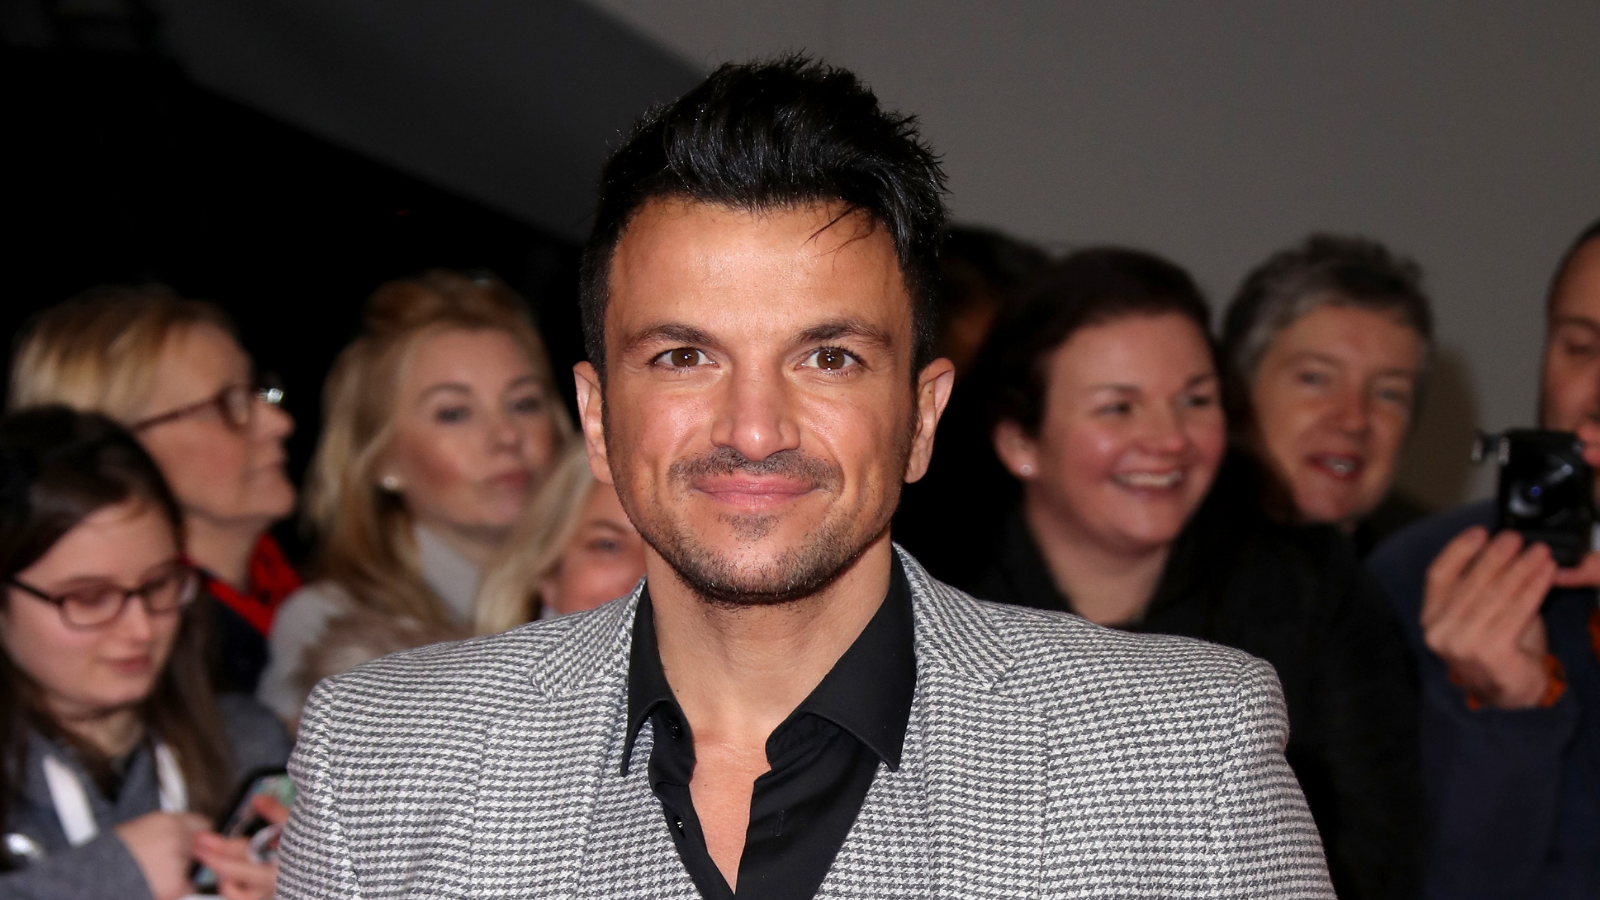 Peter Andre: How old is he? His Networth? And details about his 25 Years tour!